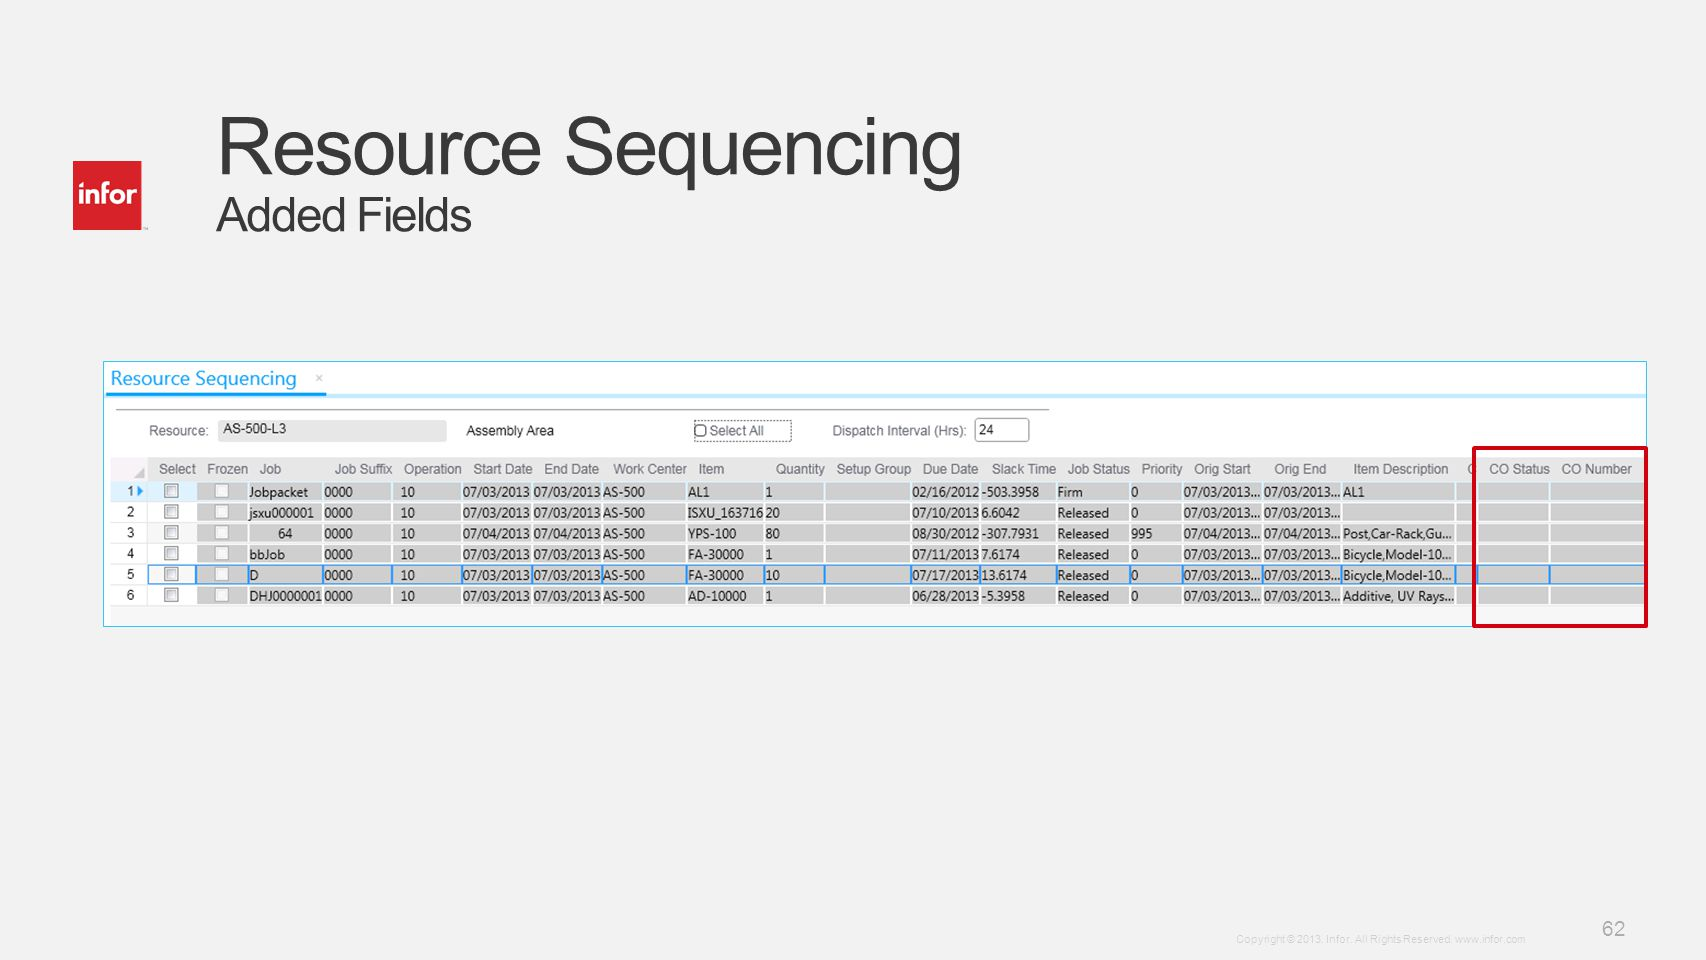 Resource Sequencing Added Fields